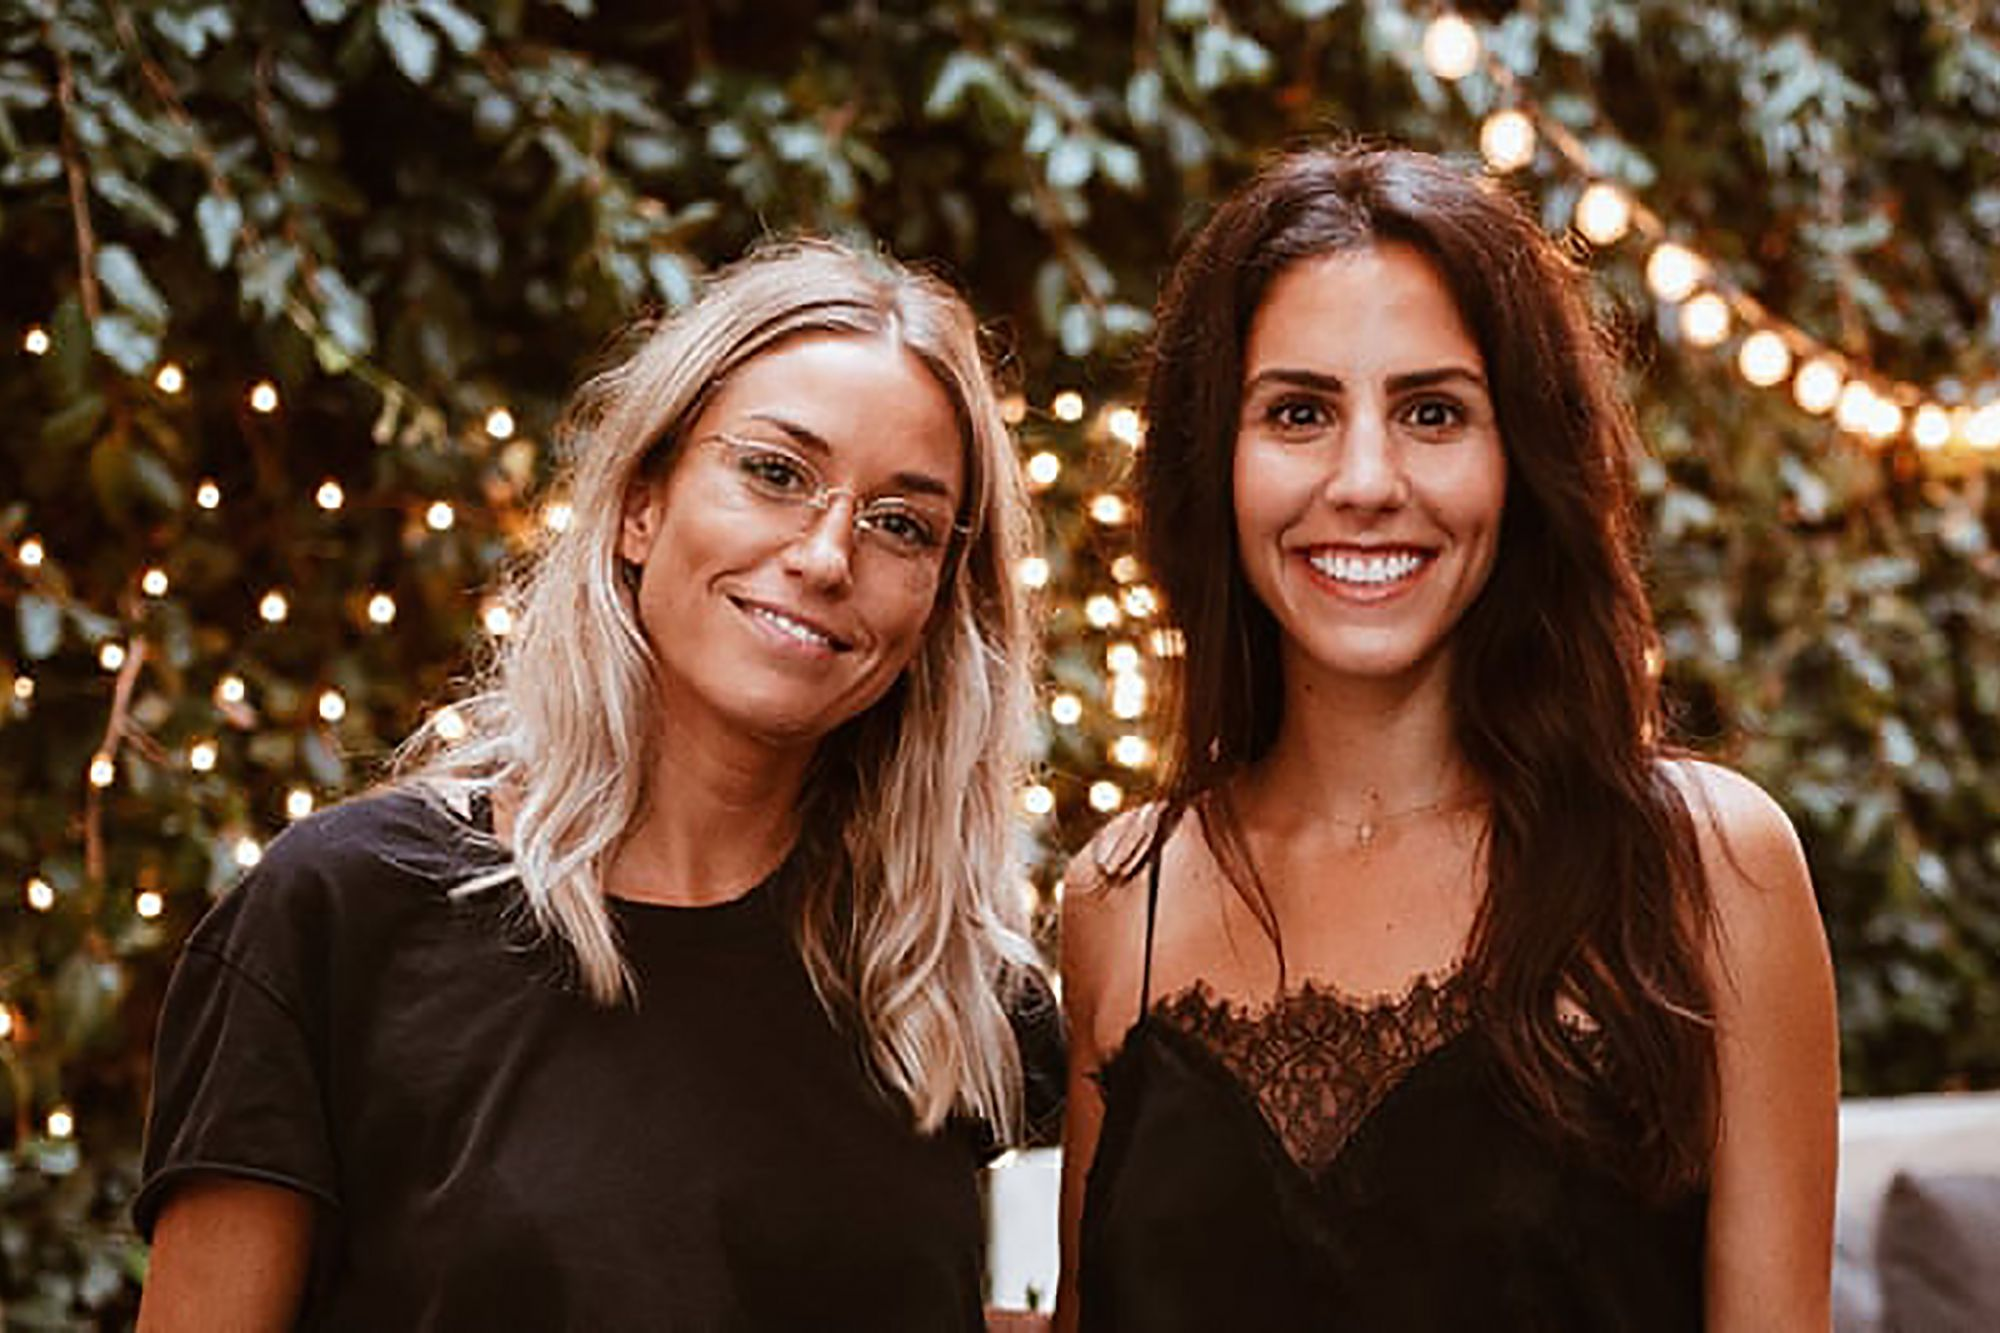 Listen: A Company That Curates Cannabis For Women